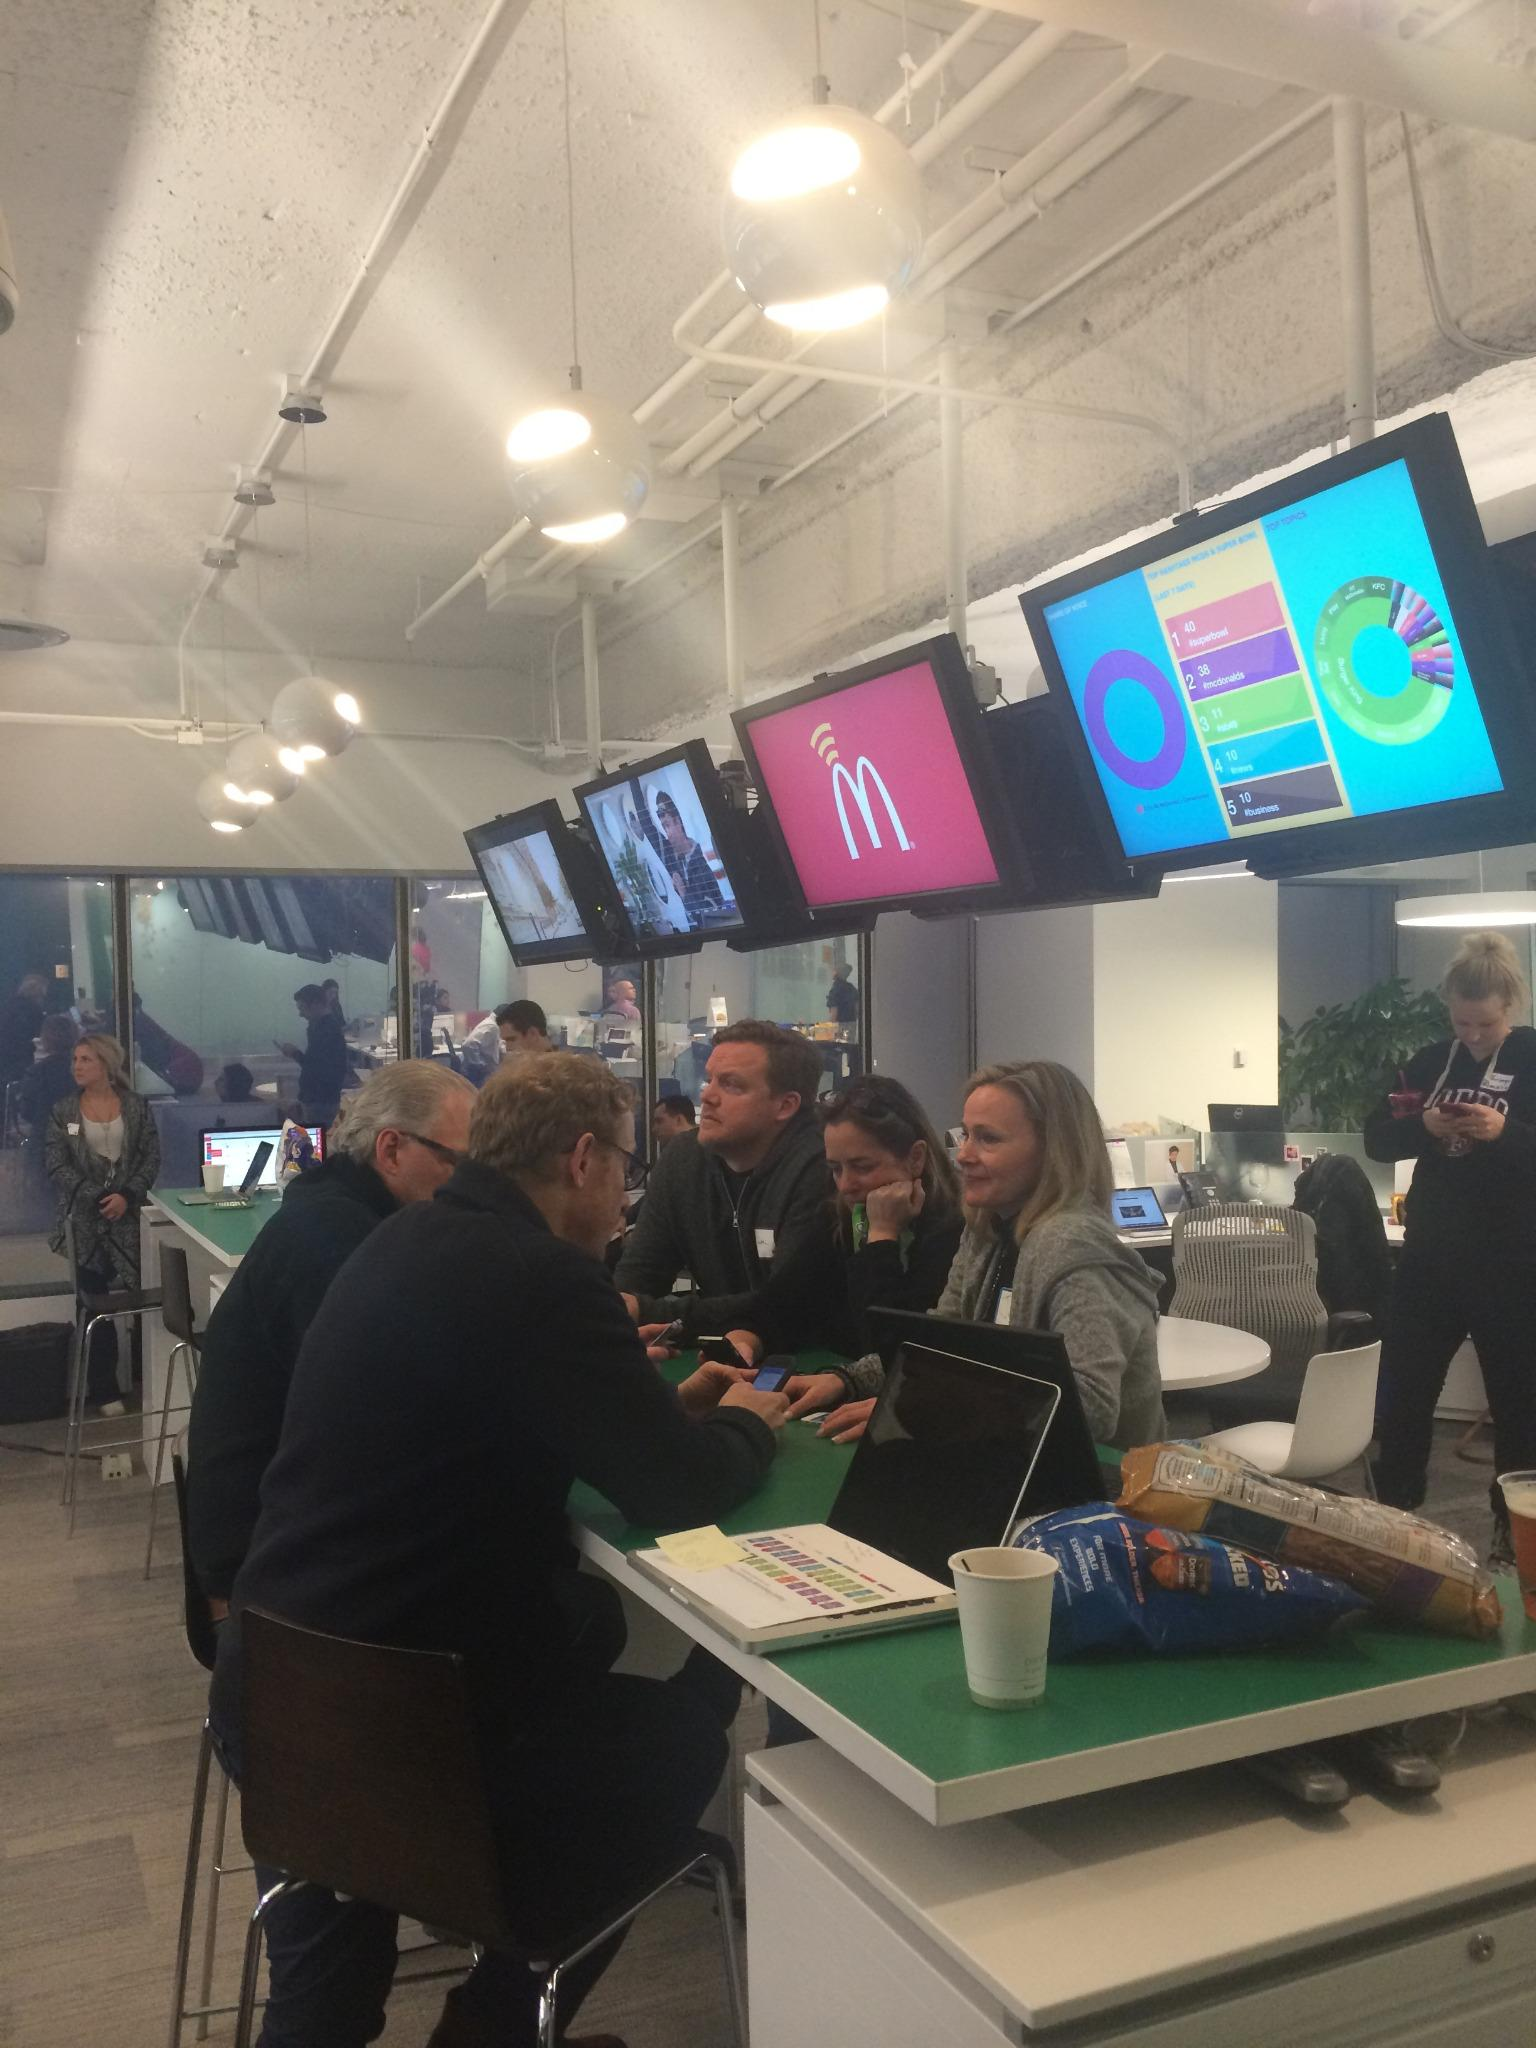 "RT @krystledarling: ""@LeoBurnett: A whole lotta lovin' in this @McDonalds #SB49 war room #superbowlprep http://t.co/yLOG7GkRMH"" @adage"